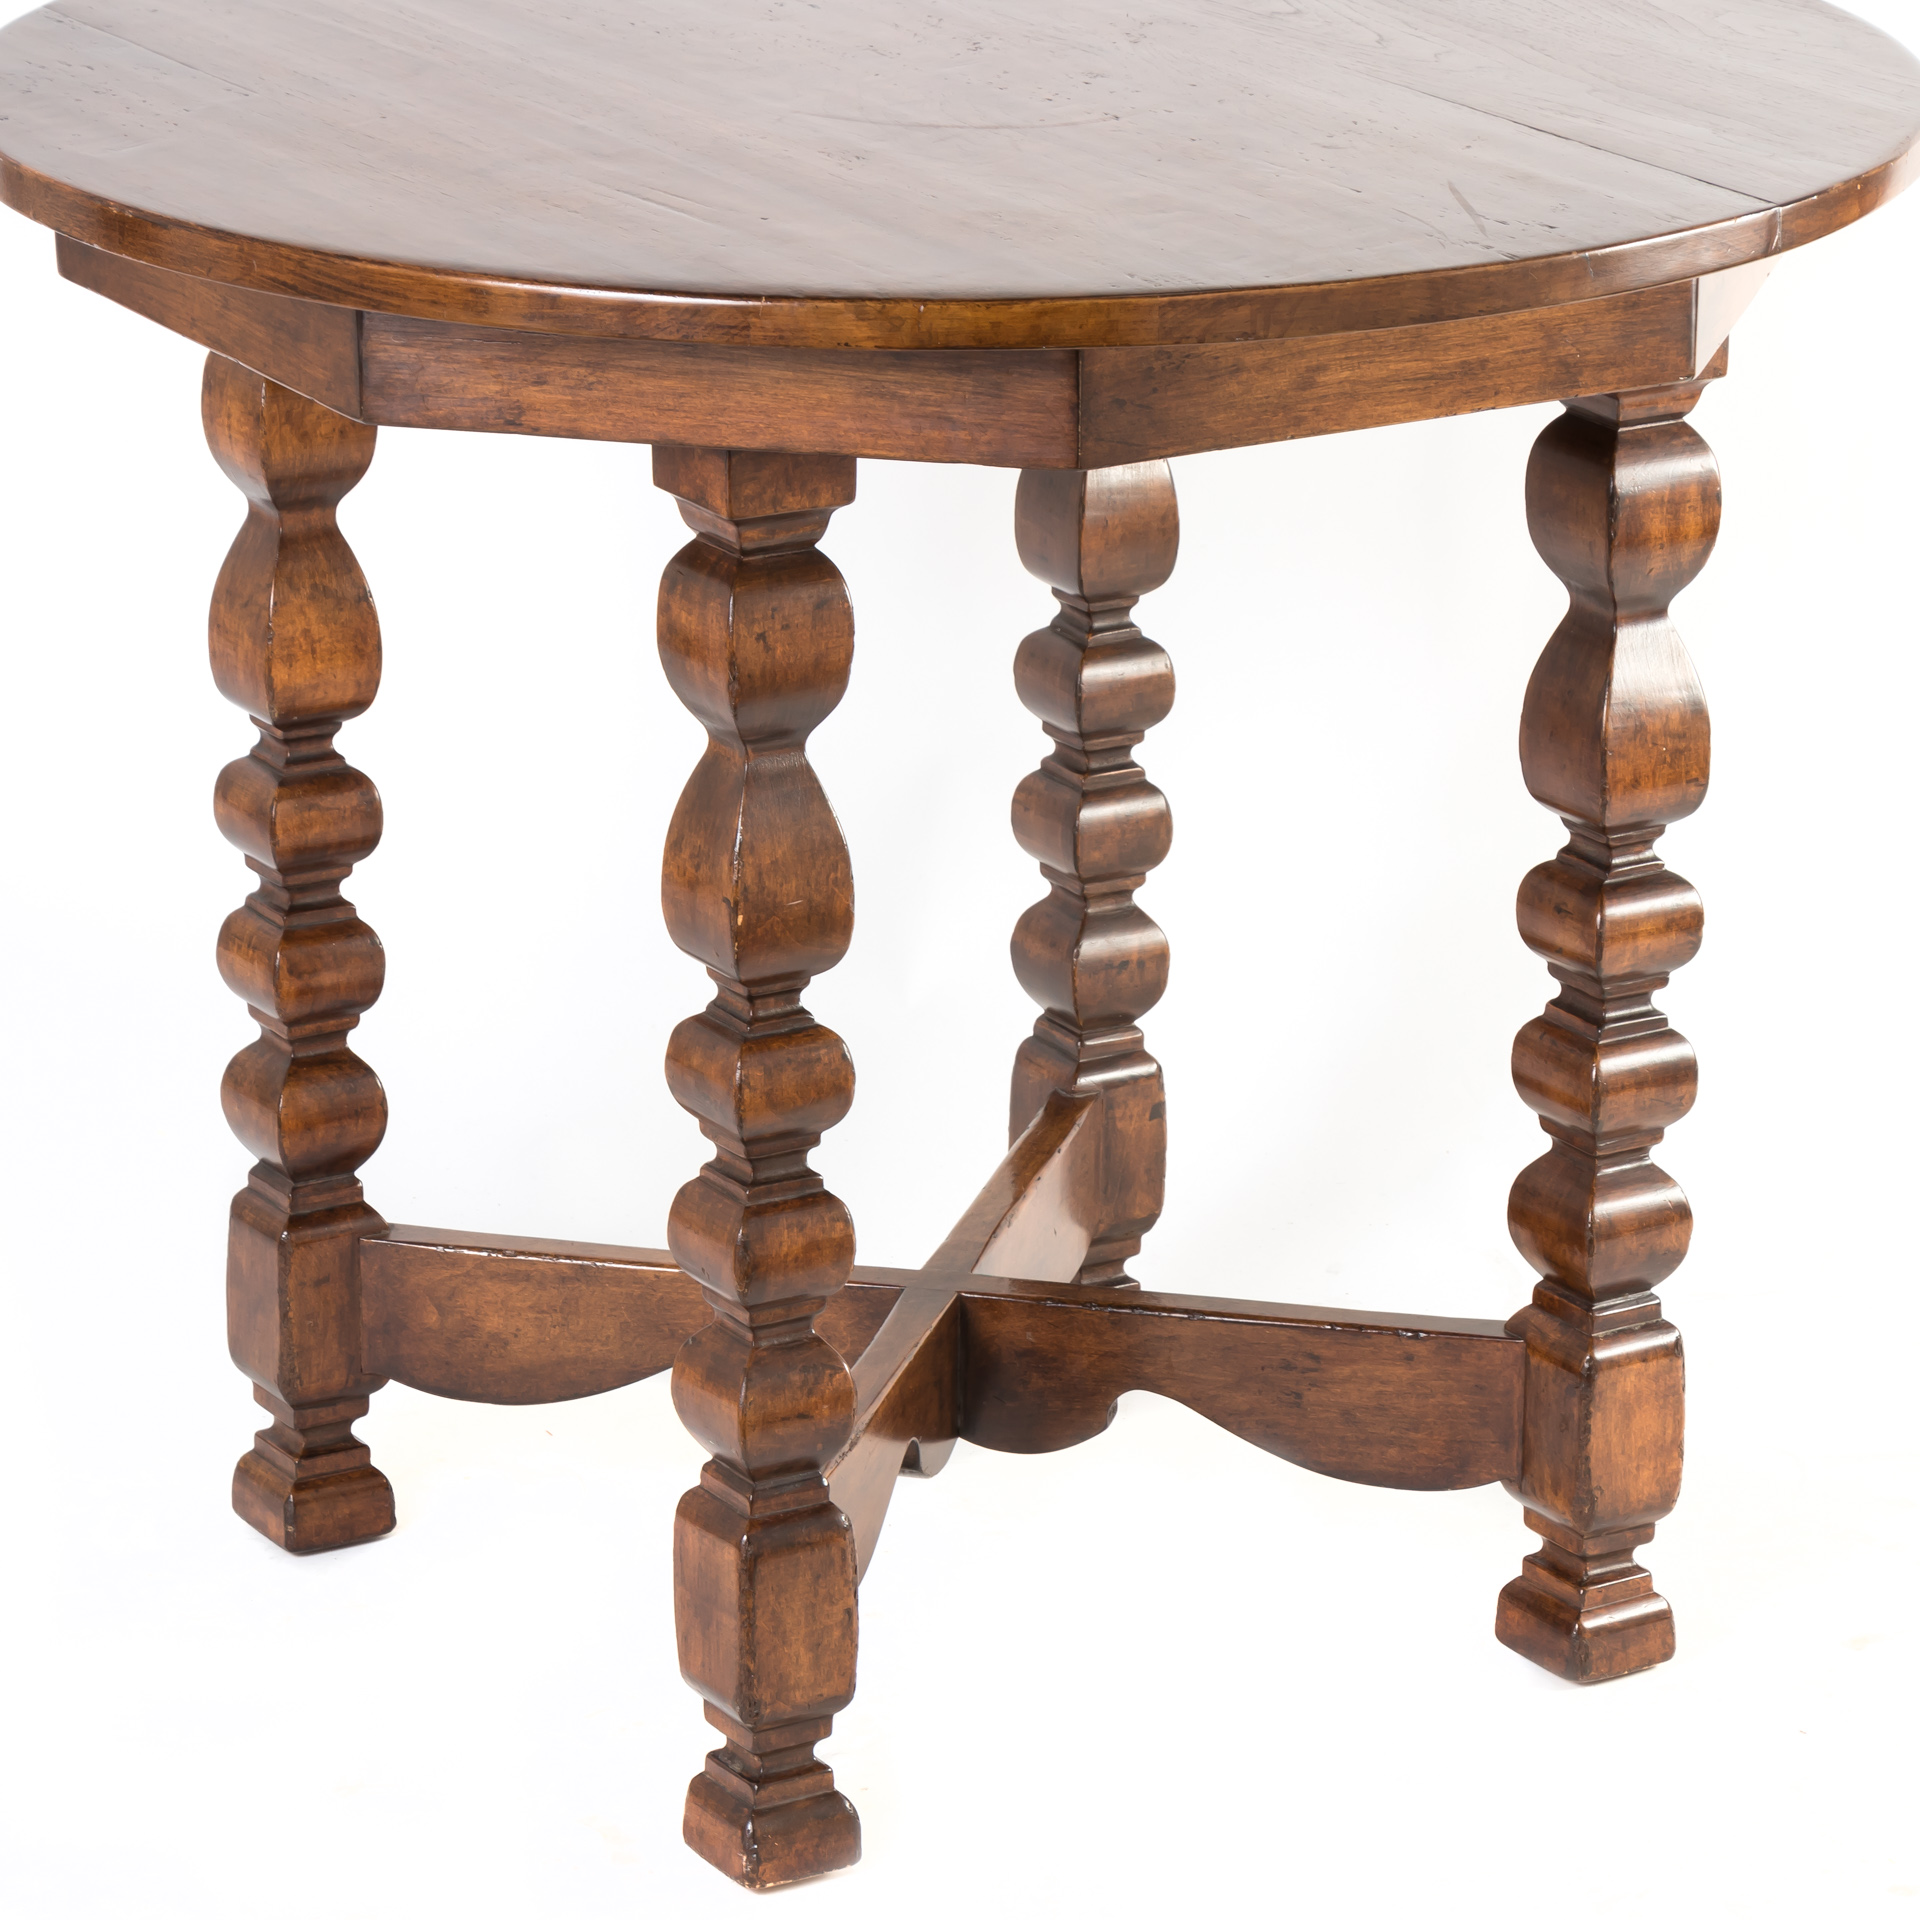 round accent table with thick carved pillar legs stretcher wood yes slim wine rack outdoor sofa nightstand charging station coastal bathroom accessories antique looking end tables